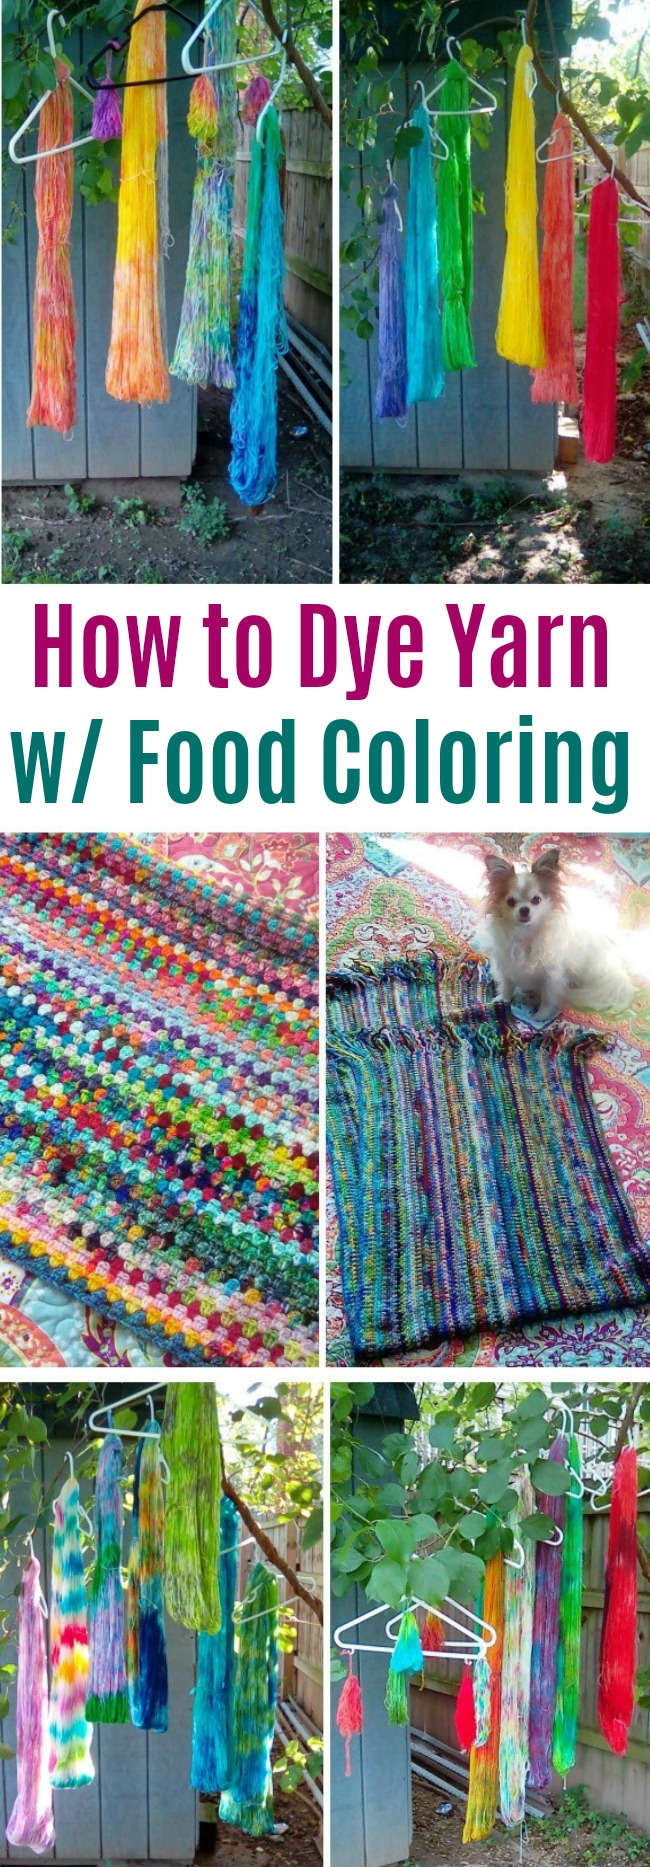 Show Me Your Hobby - Vicki Shares How She Dyes Yarn with Food ...